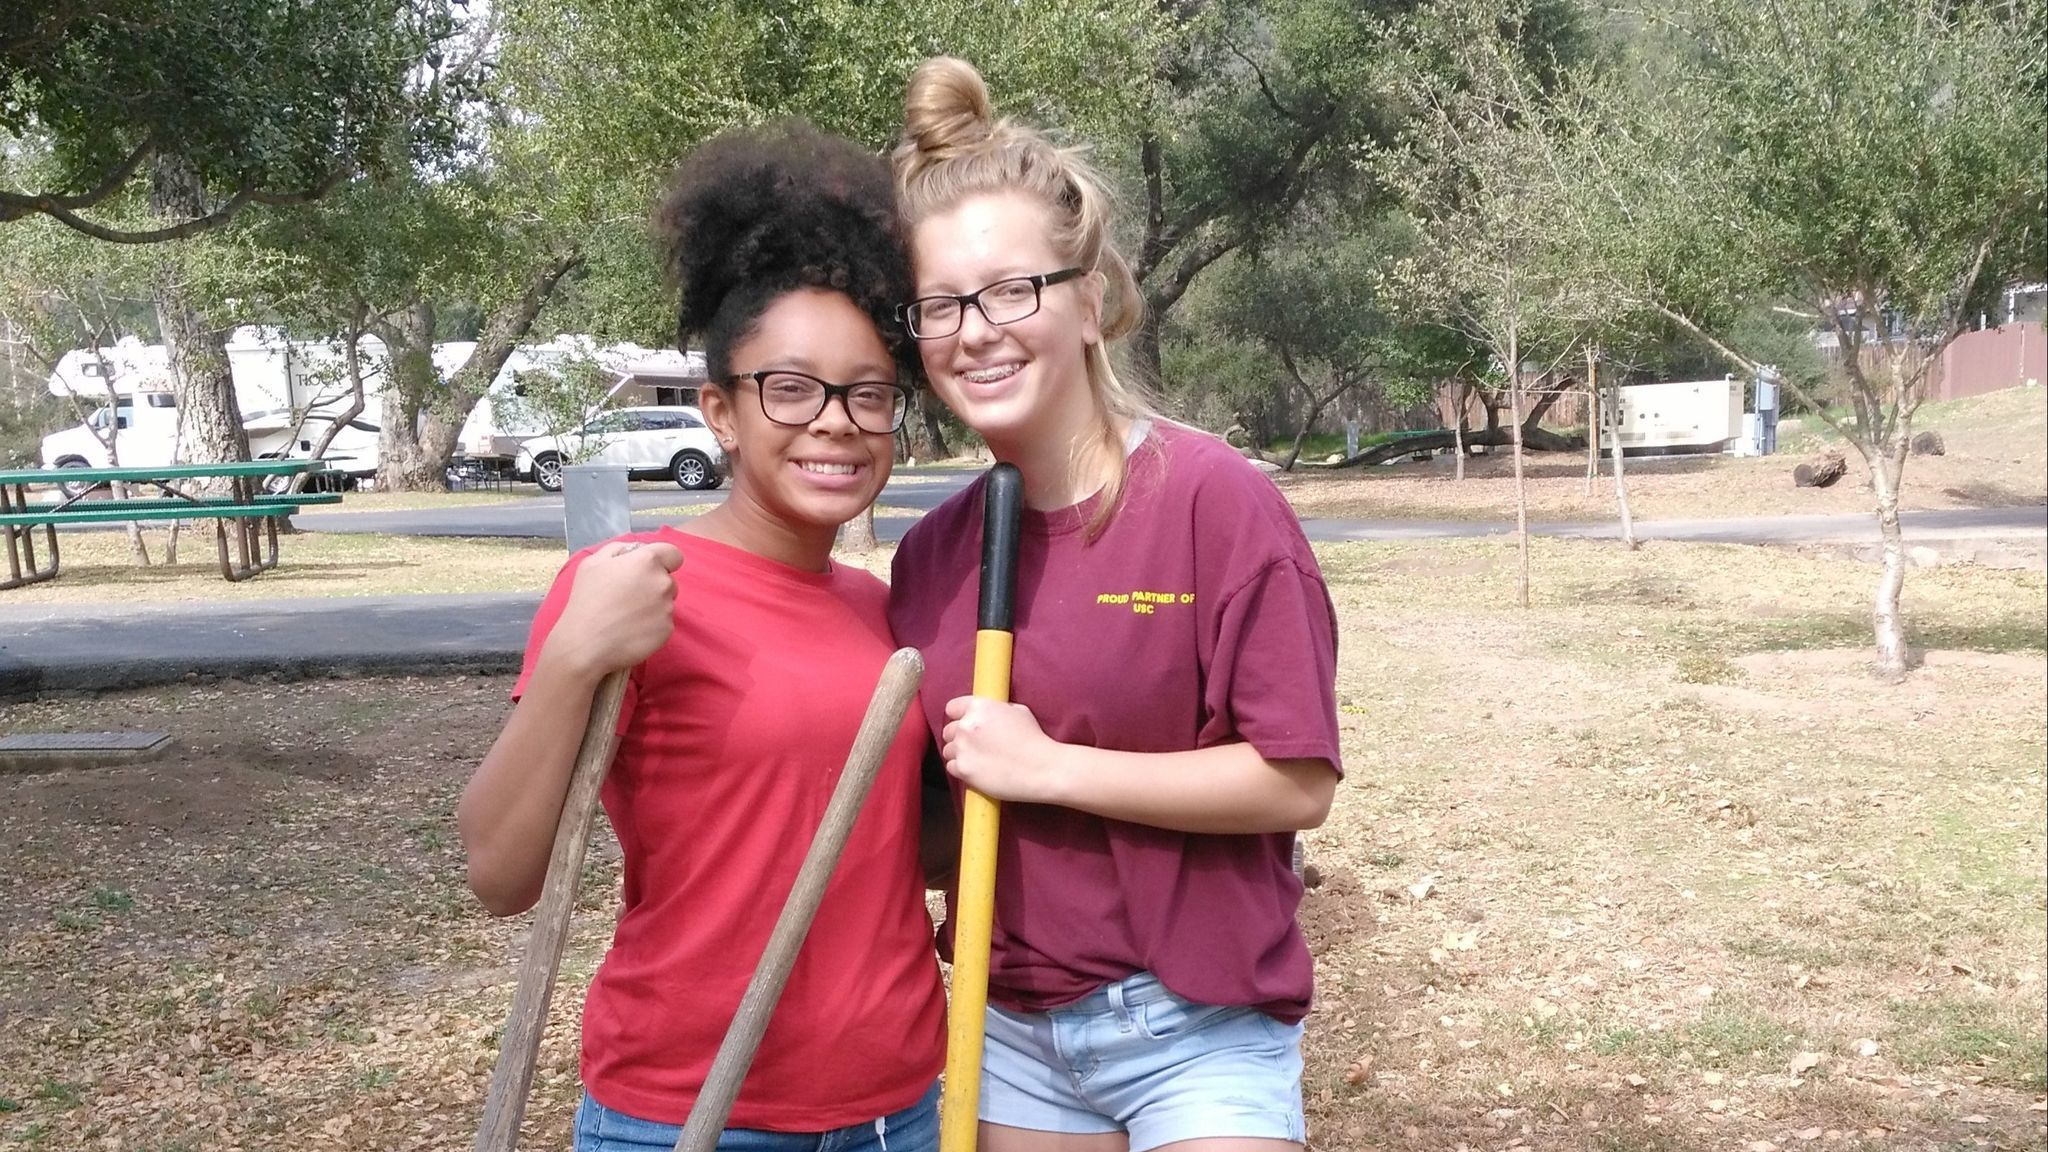 Ramona High School students Ericka Bradley, 15, and Ariel Olvera, 14, use teamwork while planting young trees Saturday in Dos Picos County Park.